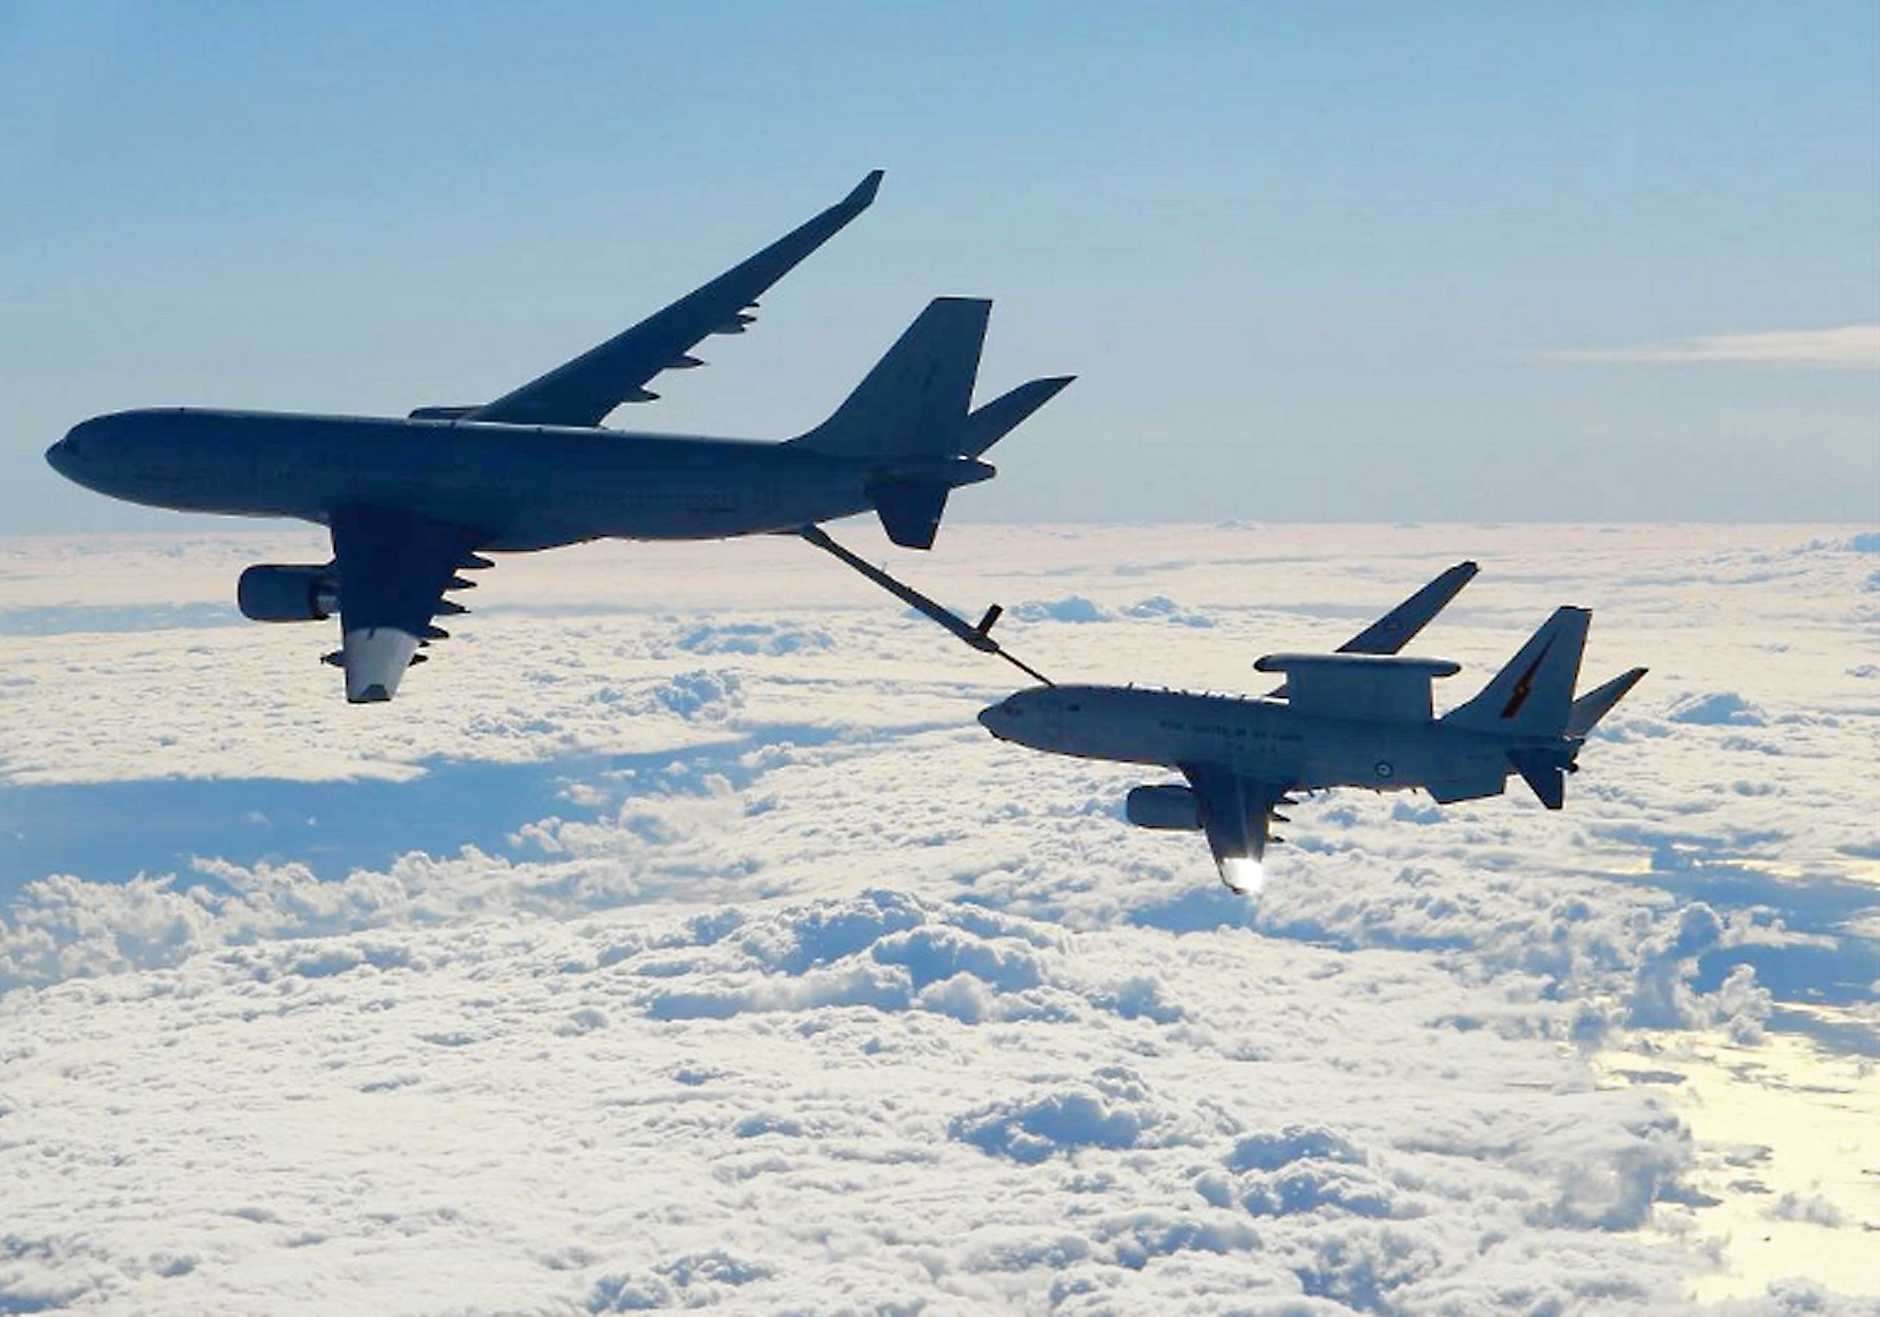 JOB DONE: A Royal Australian Air Force KC-30A Multi Role Tanker Transport aircraft refuels a coaltion plan during Operation Okra.